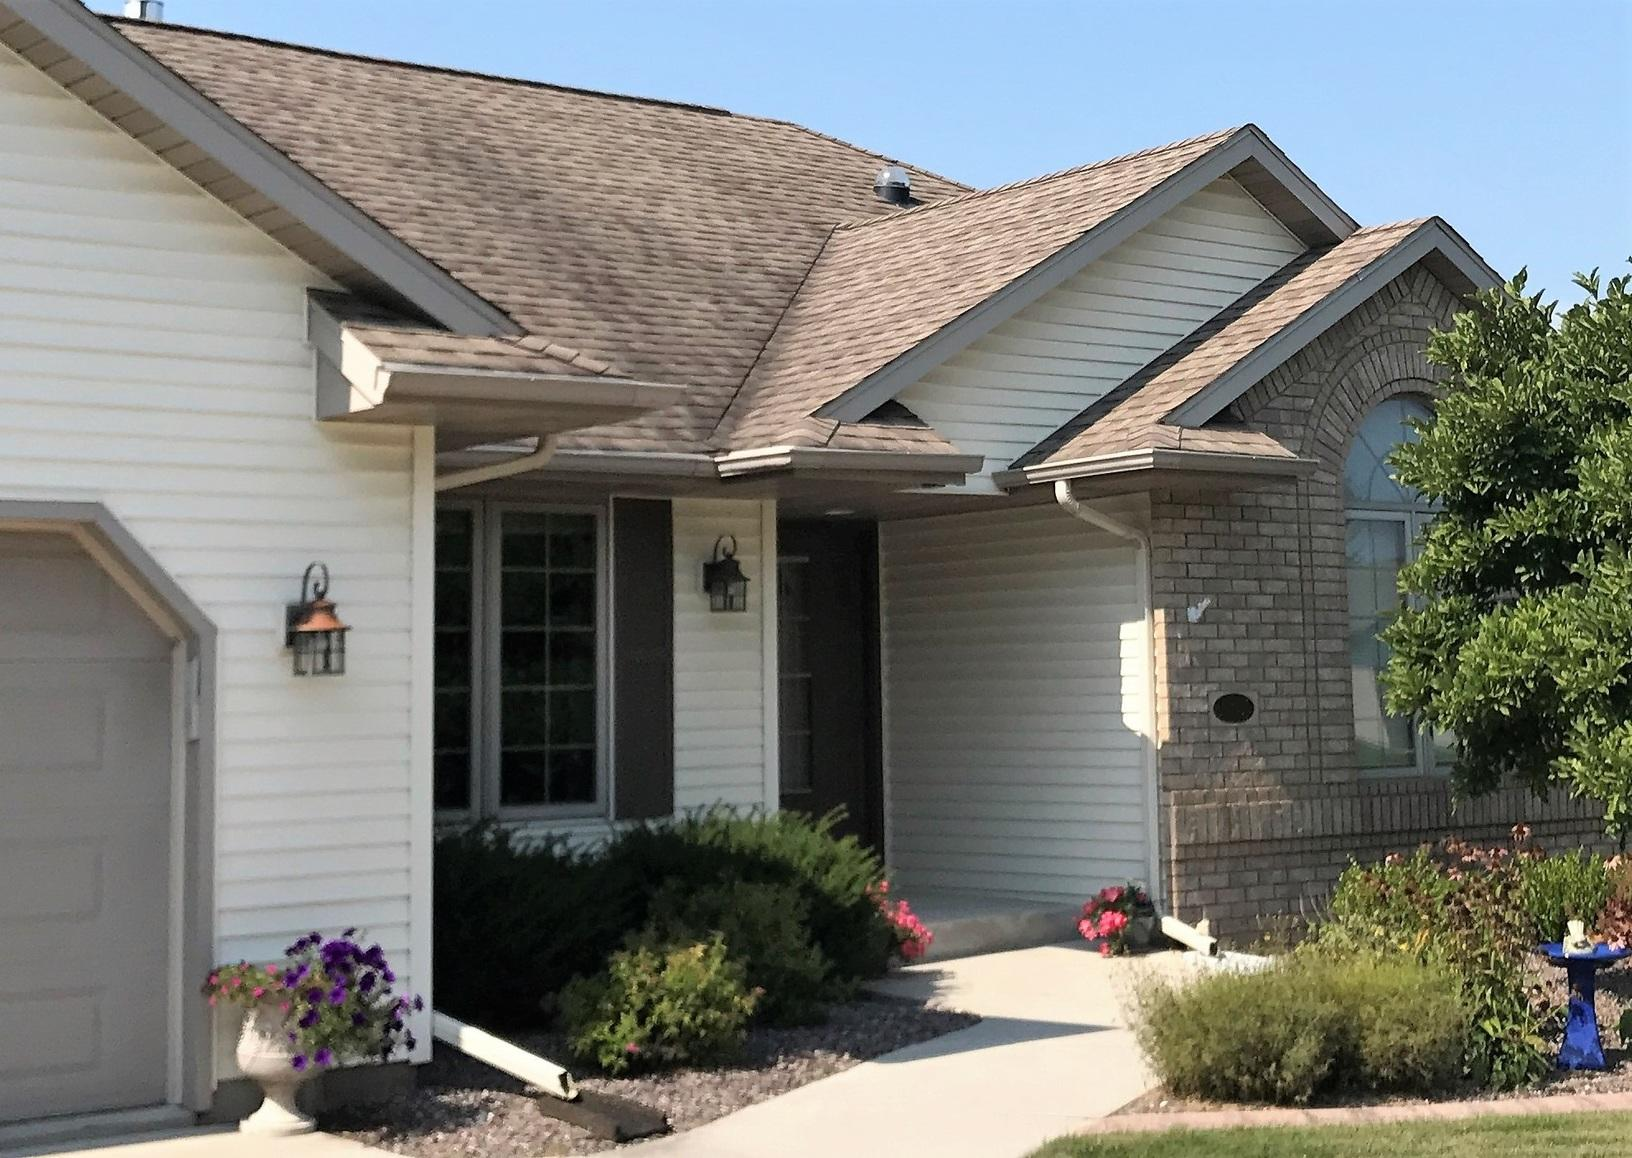 Two Tone LeafGuard a Great Look for this Home in Sheboygan Falls, WI - Before Photo